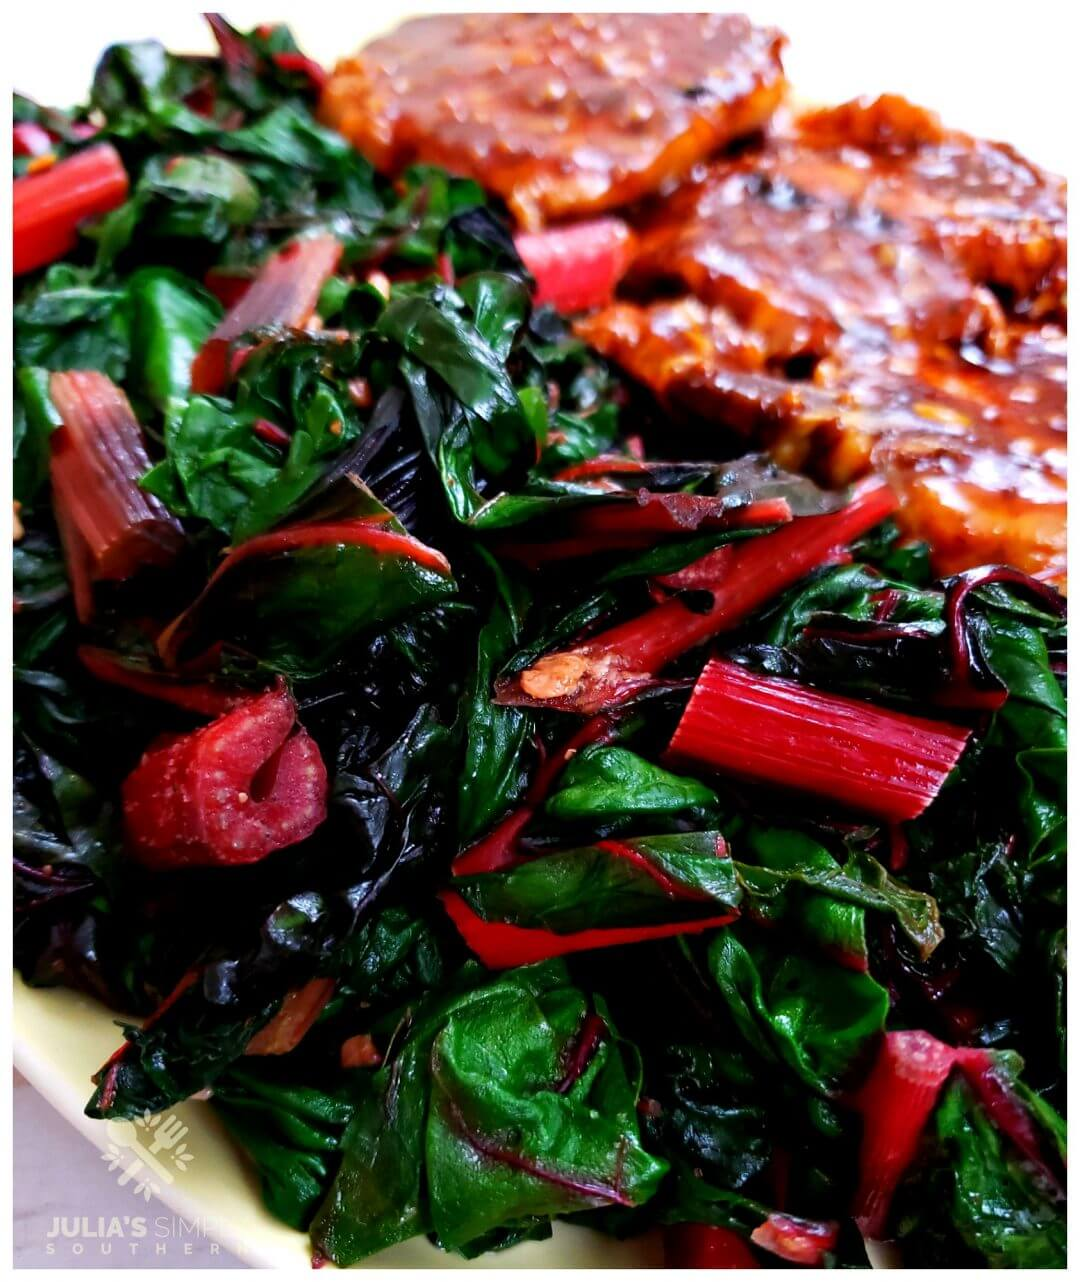 Amazing Swiss Chard Recipe - easy and healthy vegetable side dish, pictured on a platter with pork chops